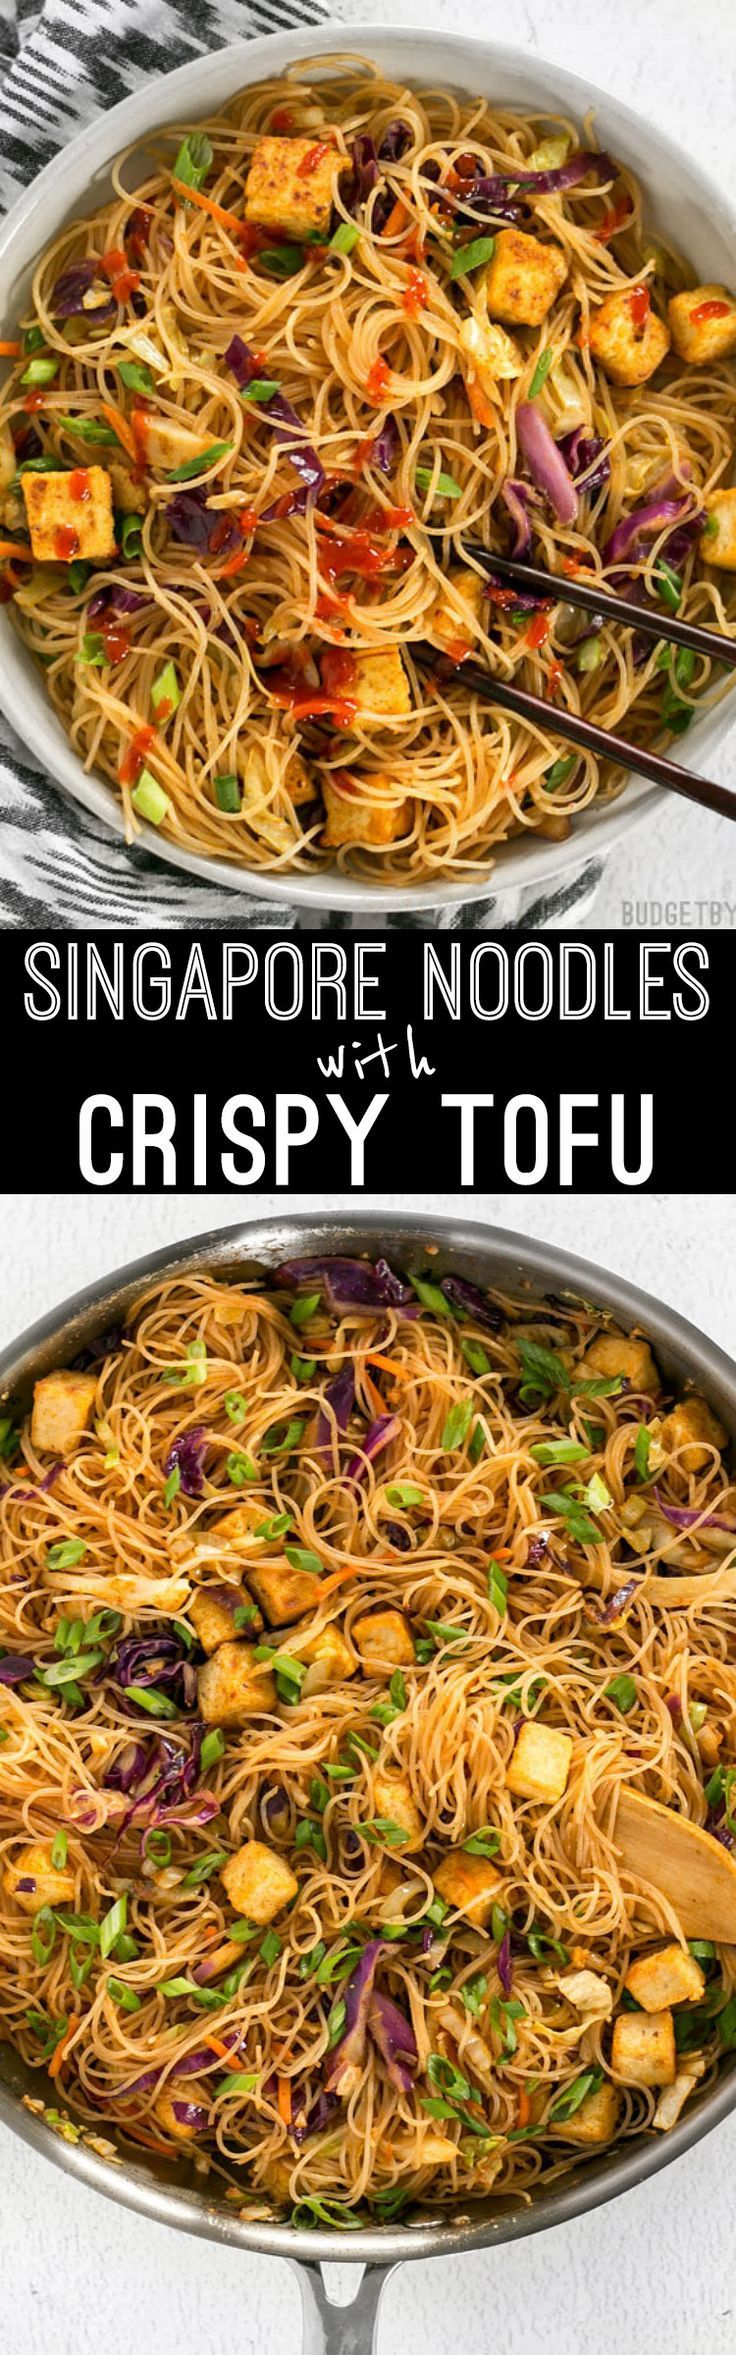 k swiss shoes outlet singapore noodles with curry